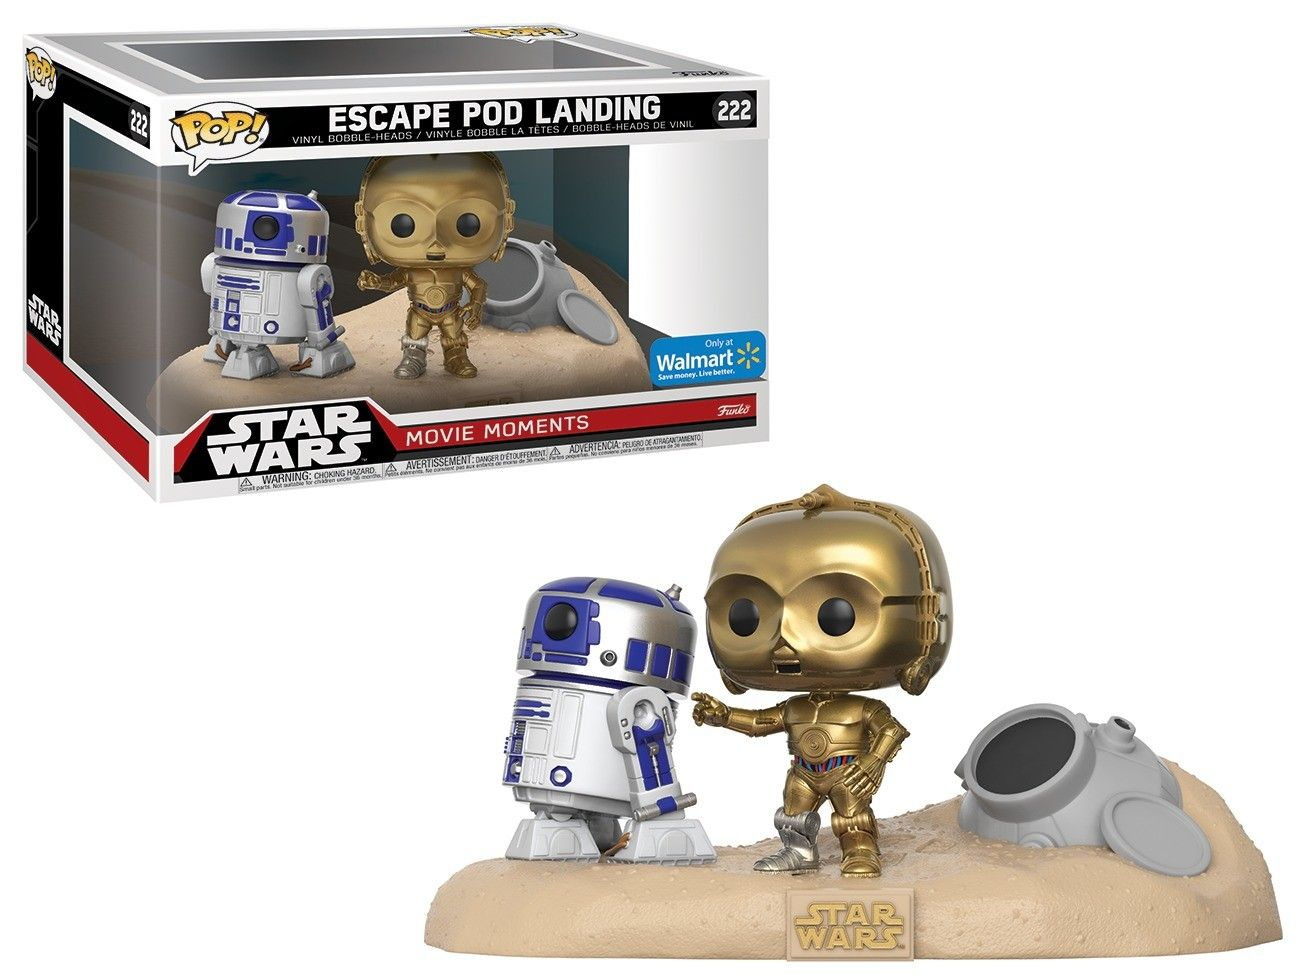 Pop! Escape Pod Landing: Star Wars (Movie Moments) Exclusivo #222 - Funko